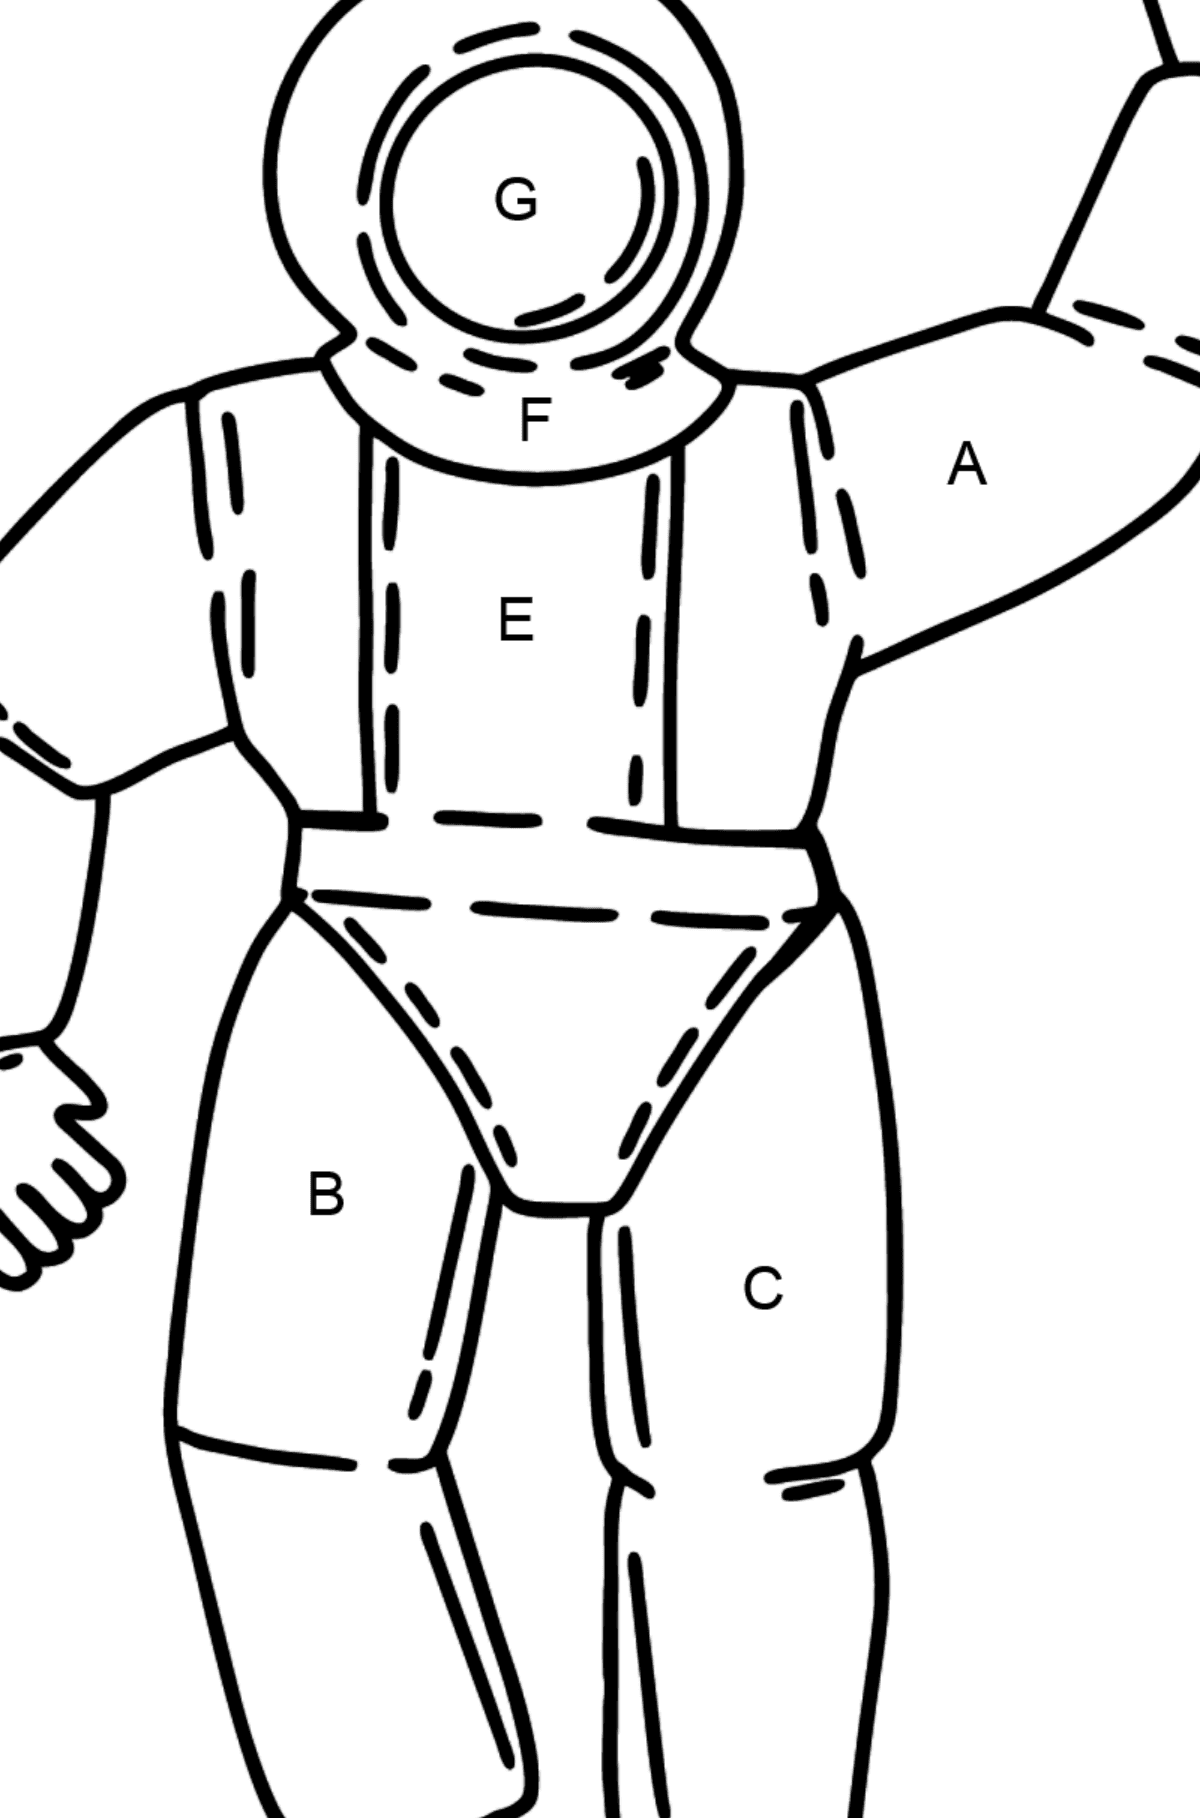 Astronaut coloring page - Coloring by Letters for Kids